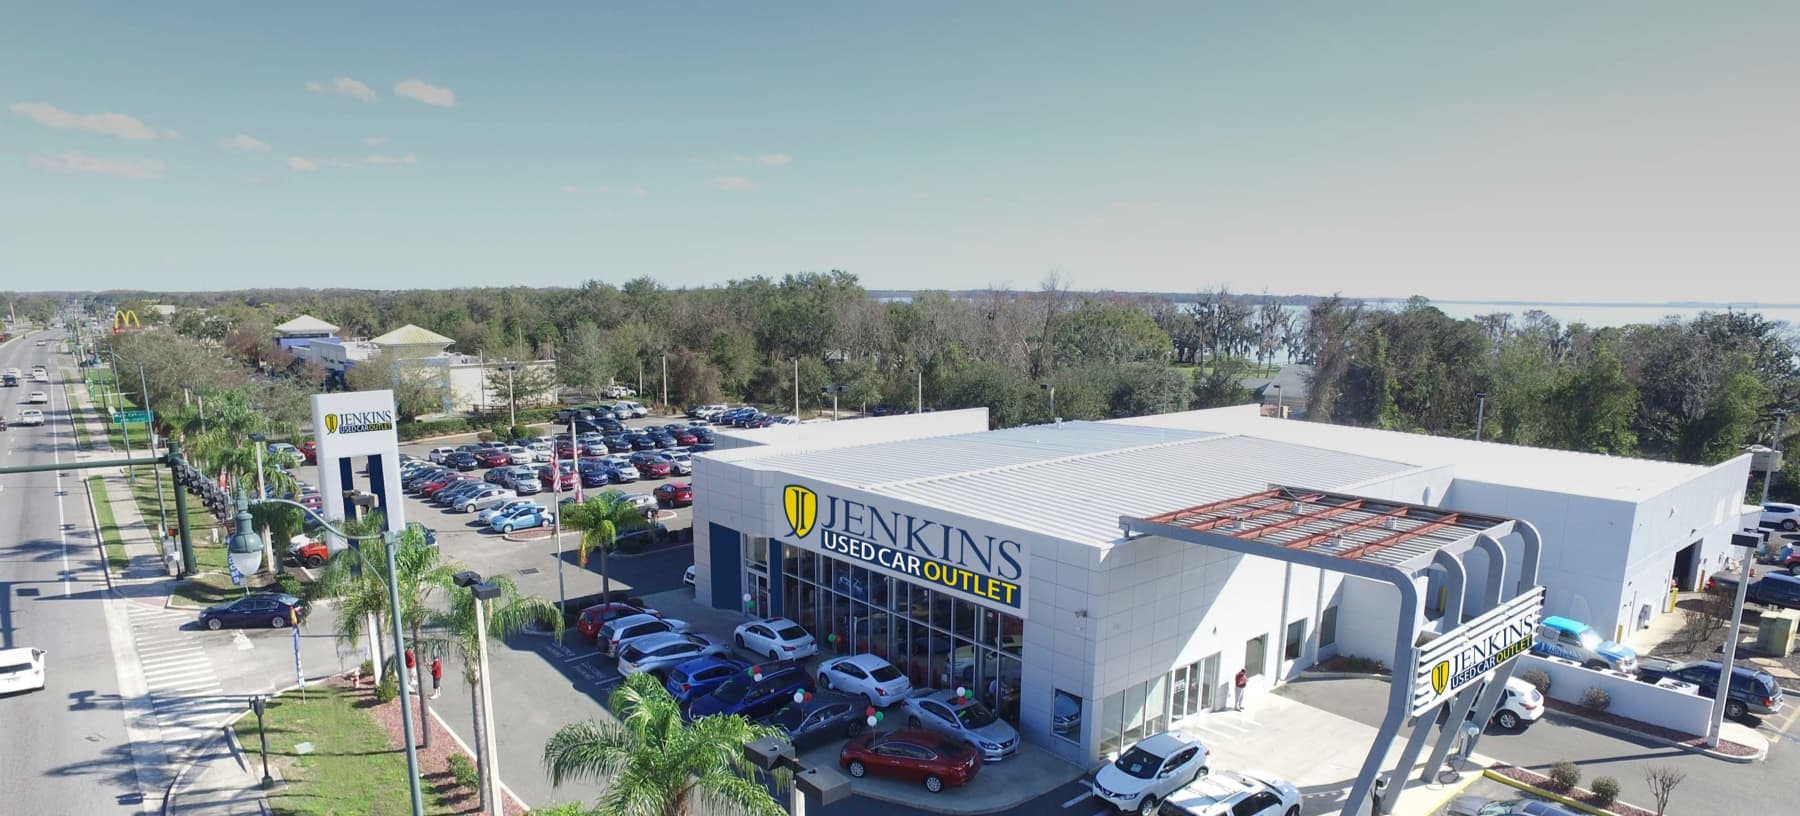 Exterior view of Jenkins Used Car Outlet